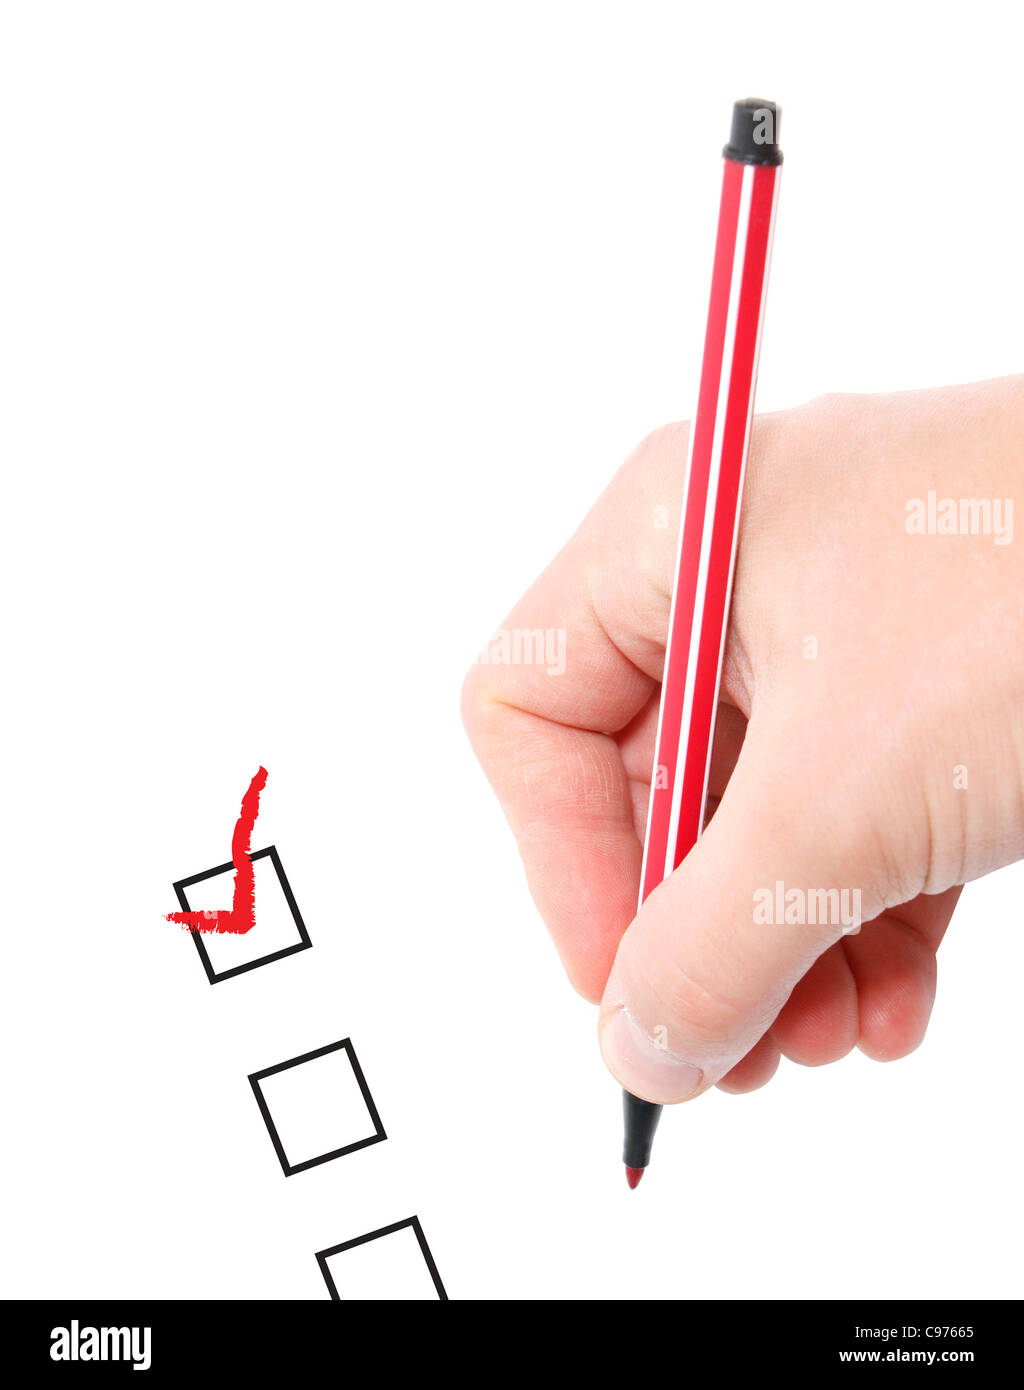 A survey on white paper - Stock Image